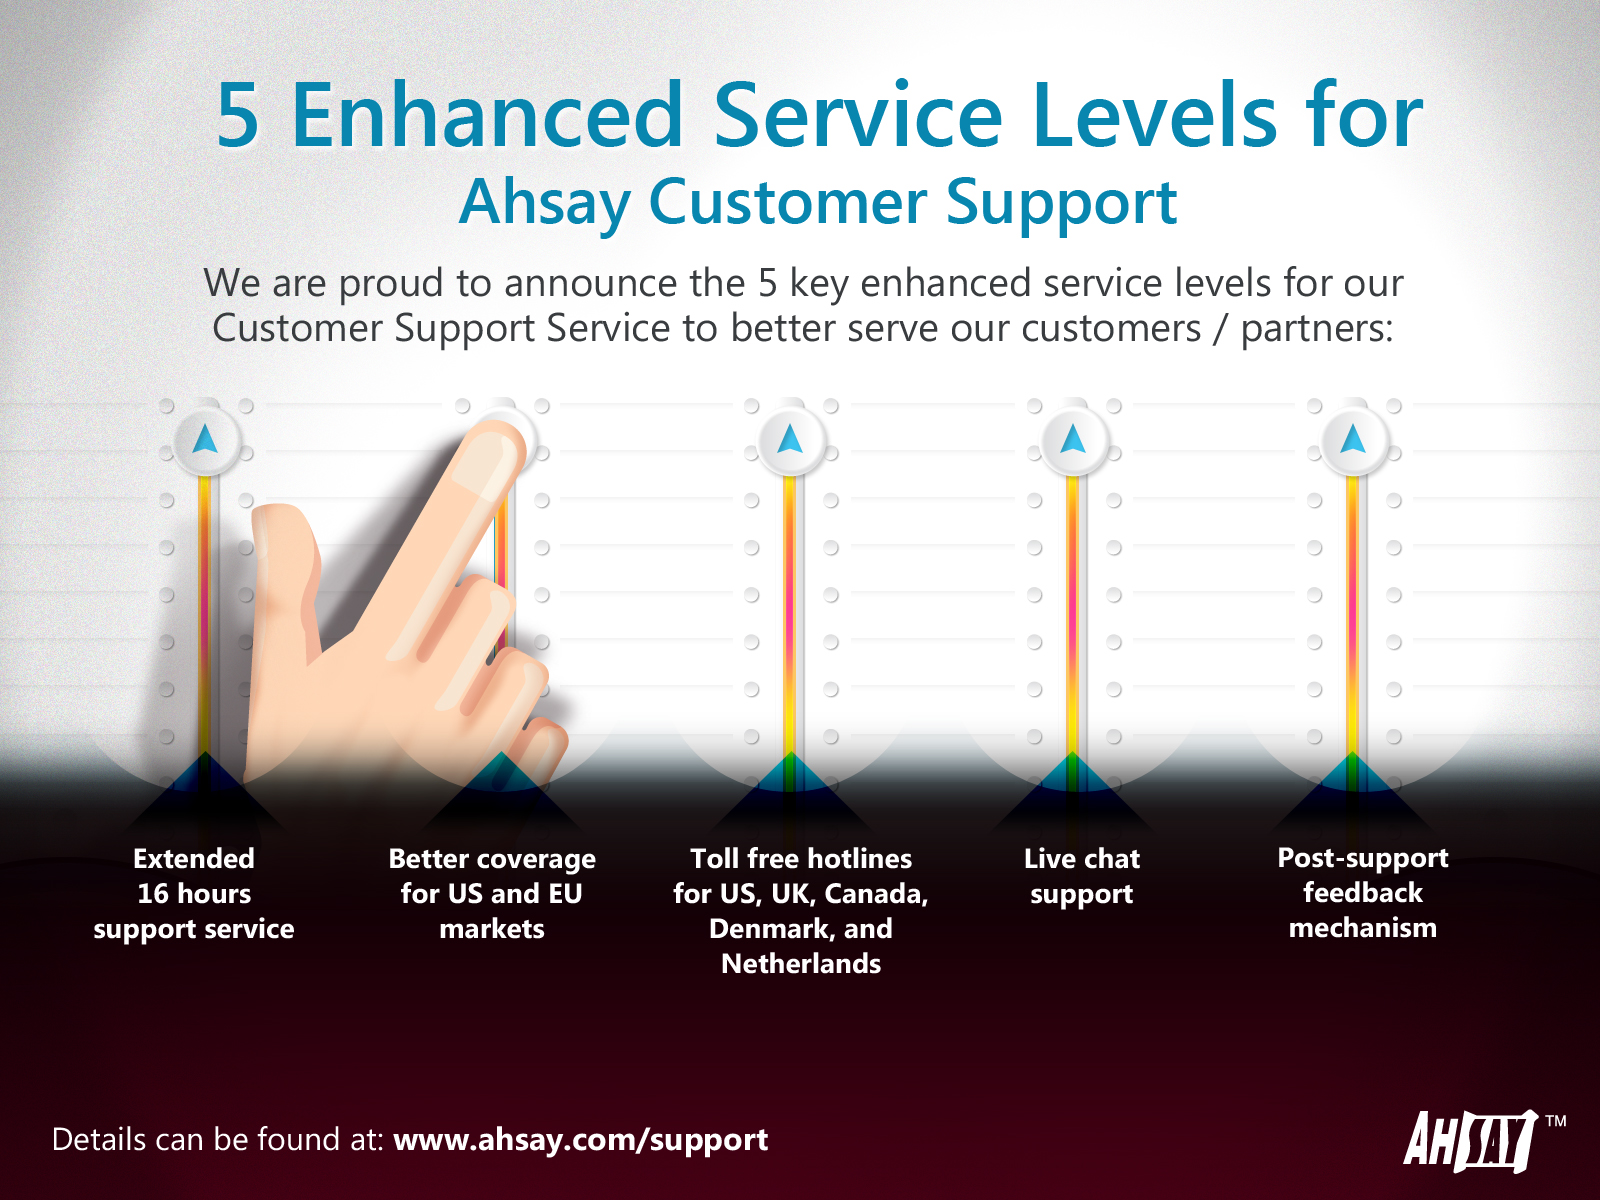 5 Enhanced Service Levels for Ahsay Customer Support